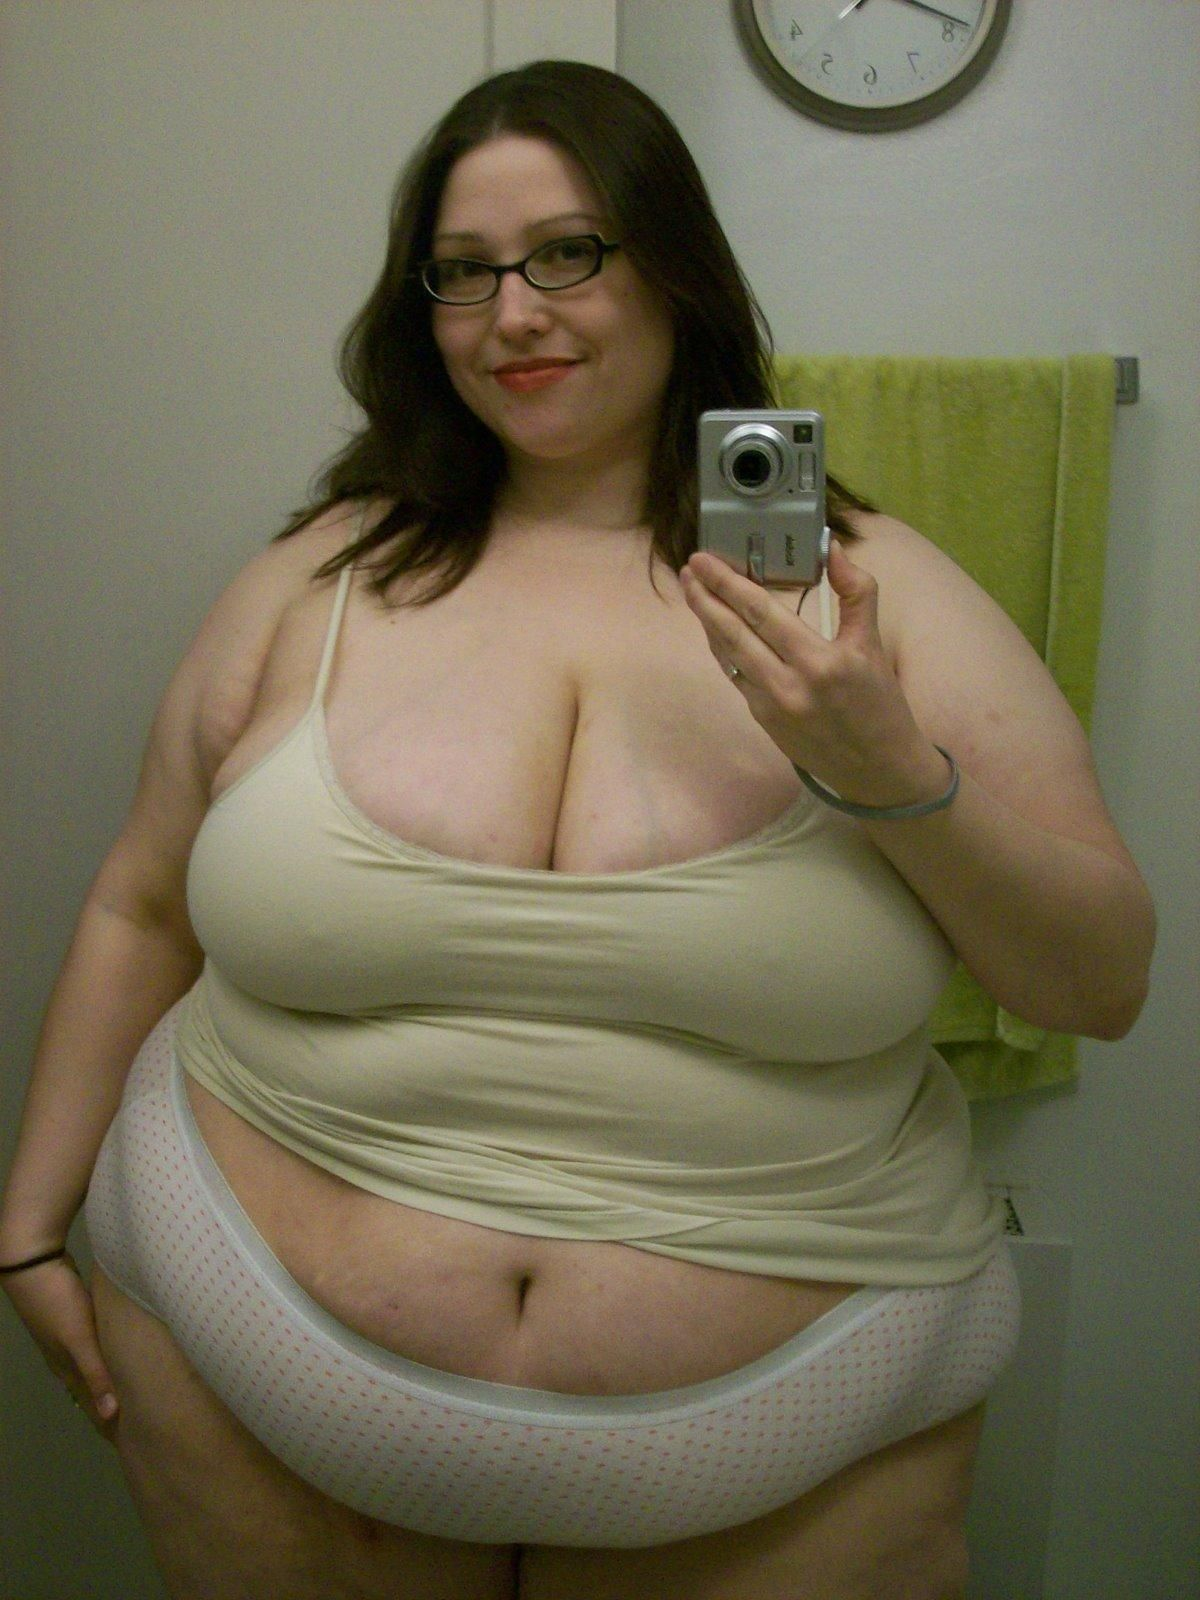 Bbw Big Asshole 29 best beauty images | curvy, plus size beauty, women